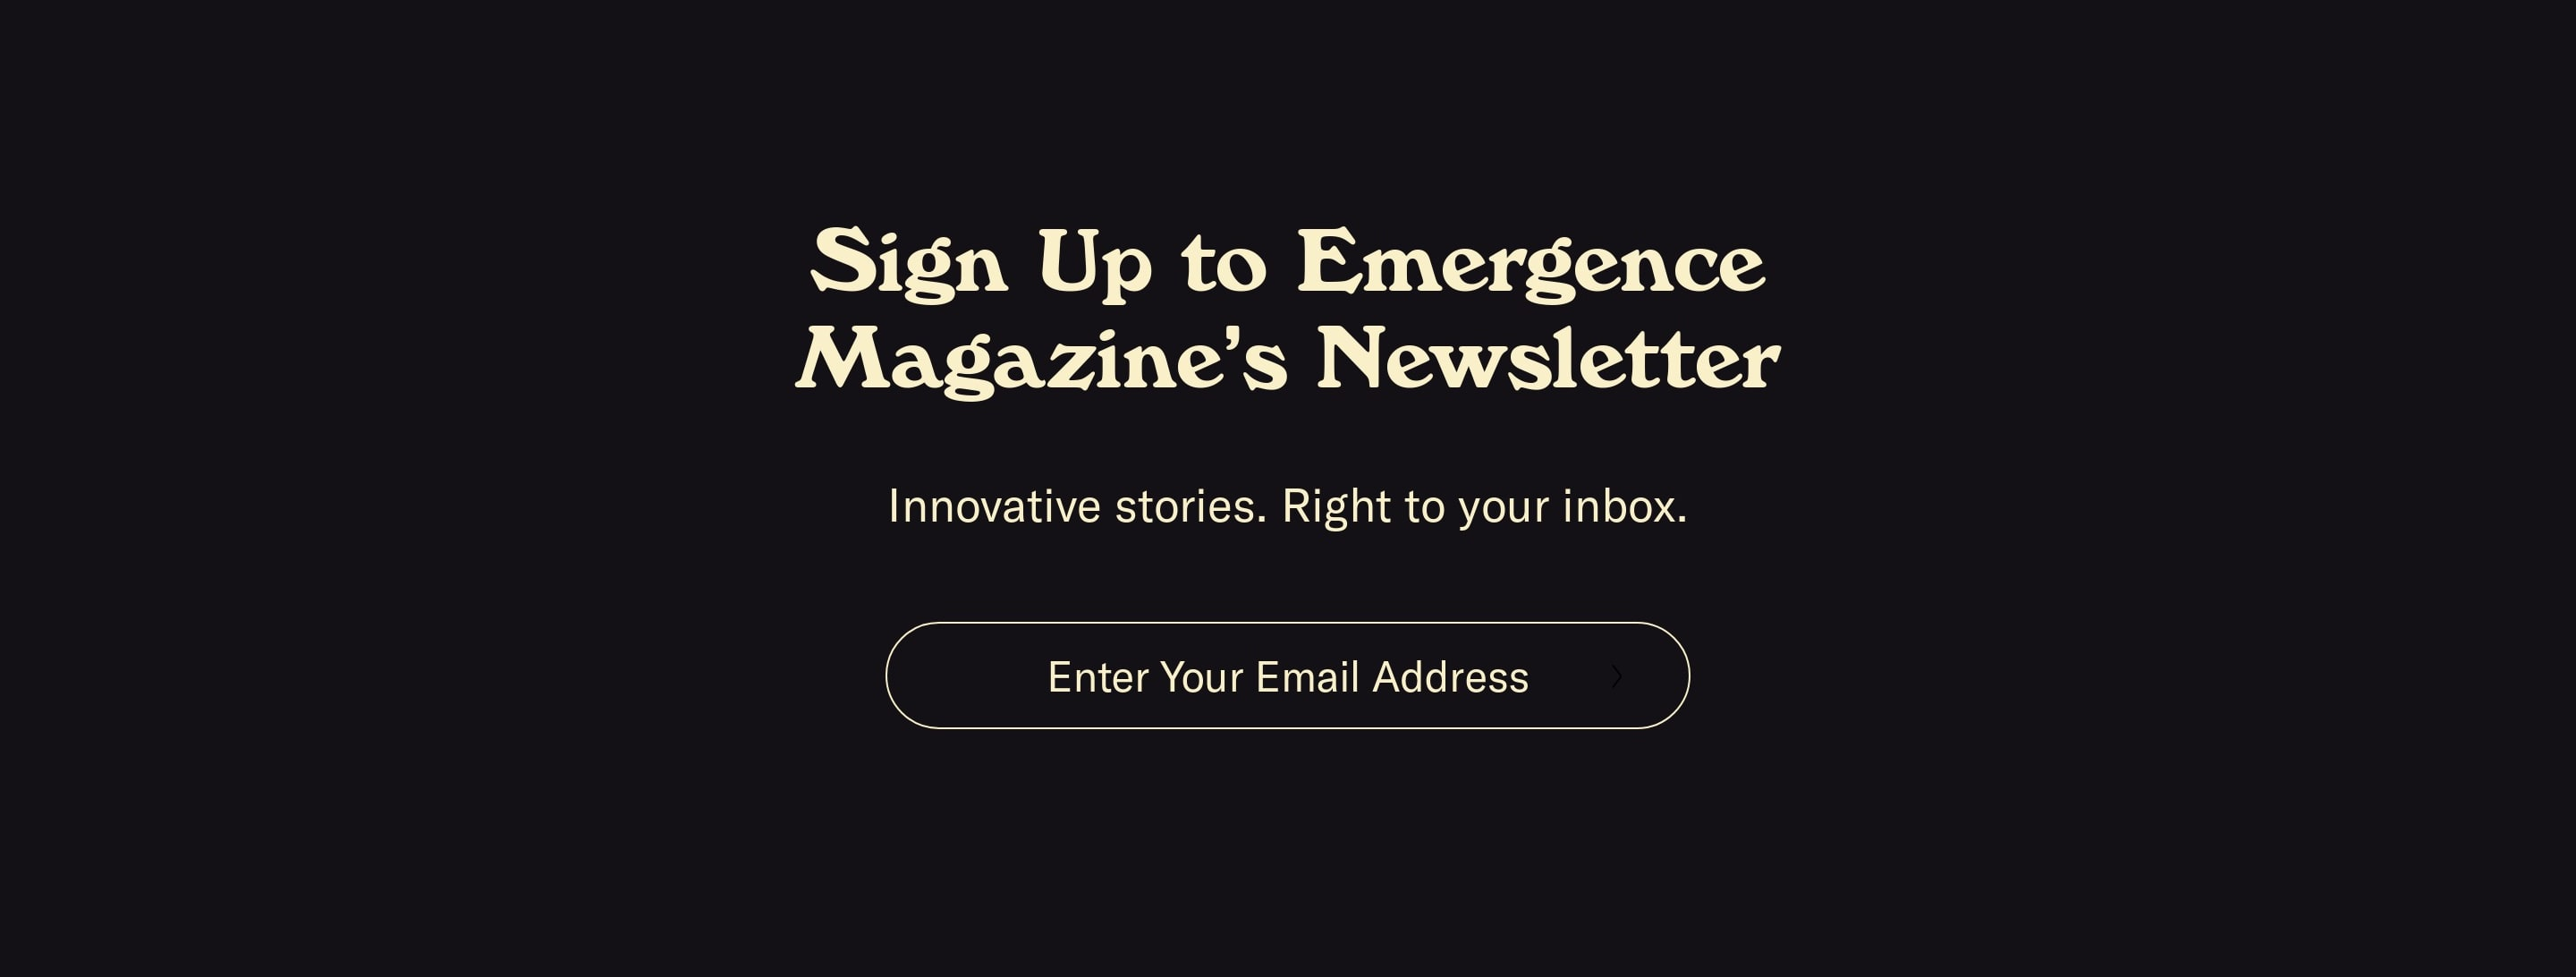 Big Subscribe Form with Email Address